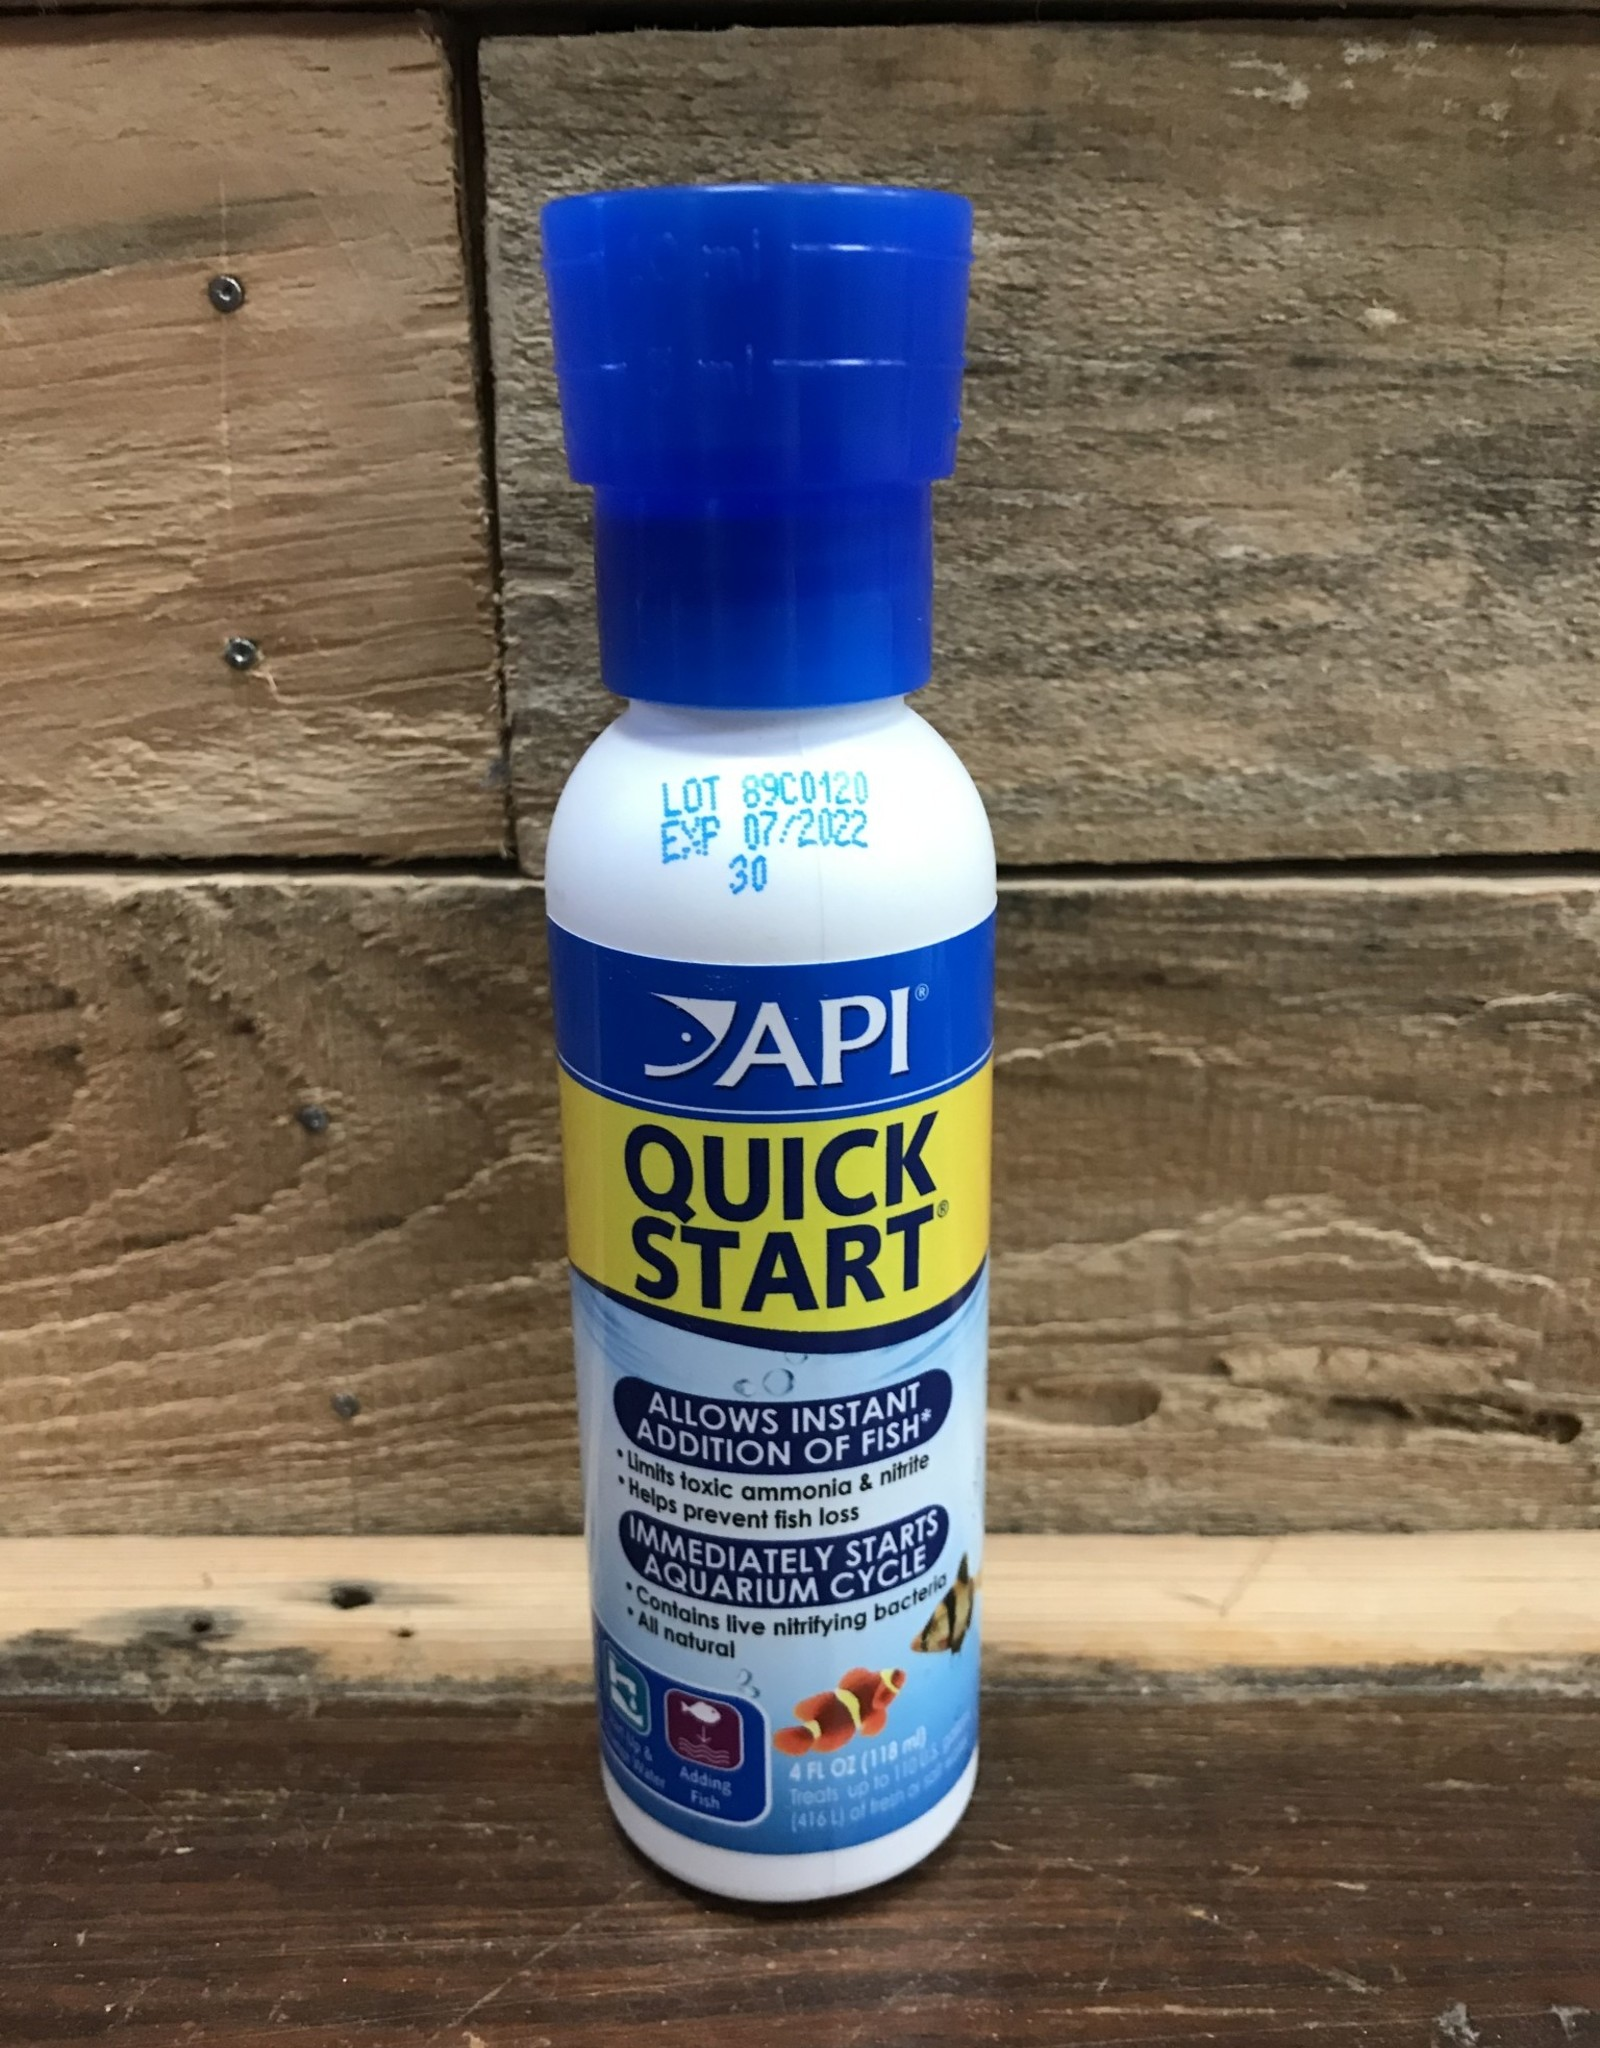 Api - Mars Fish Care API 4 OZ. QUICK START